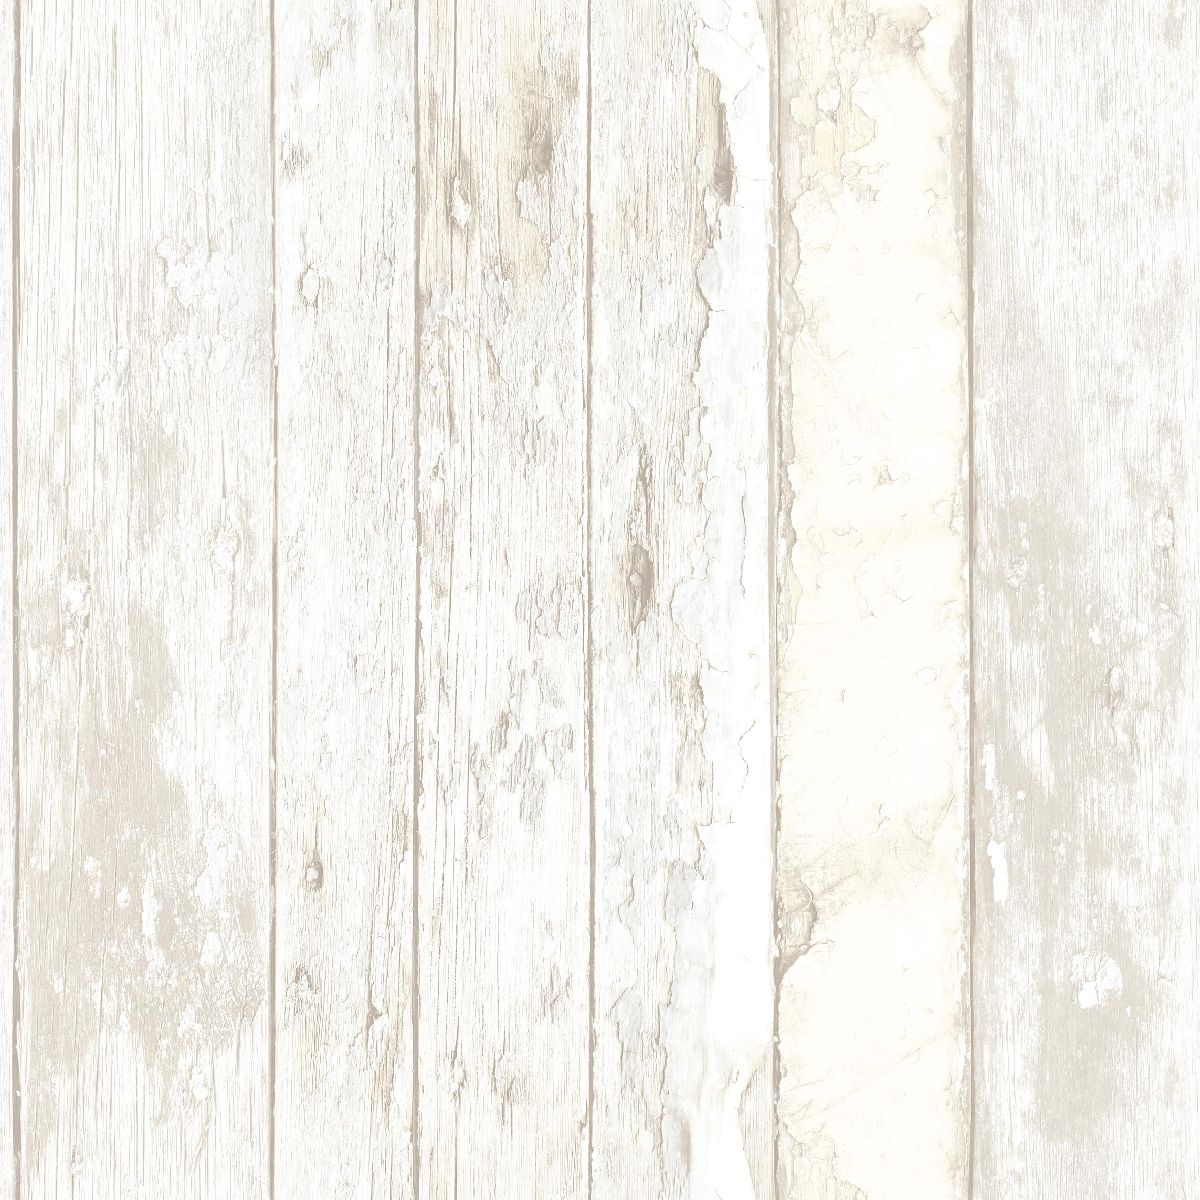 Decowunder wallpapers non woven wallpaper Exposed weathered boards PE 1200x1200